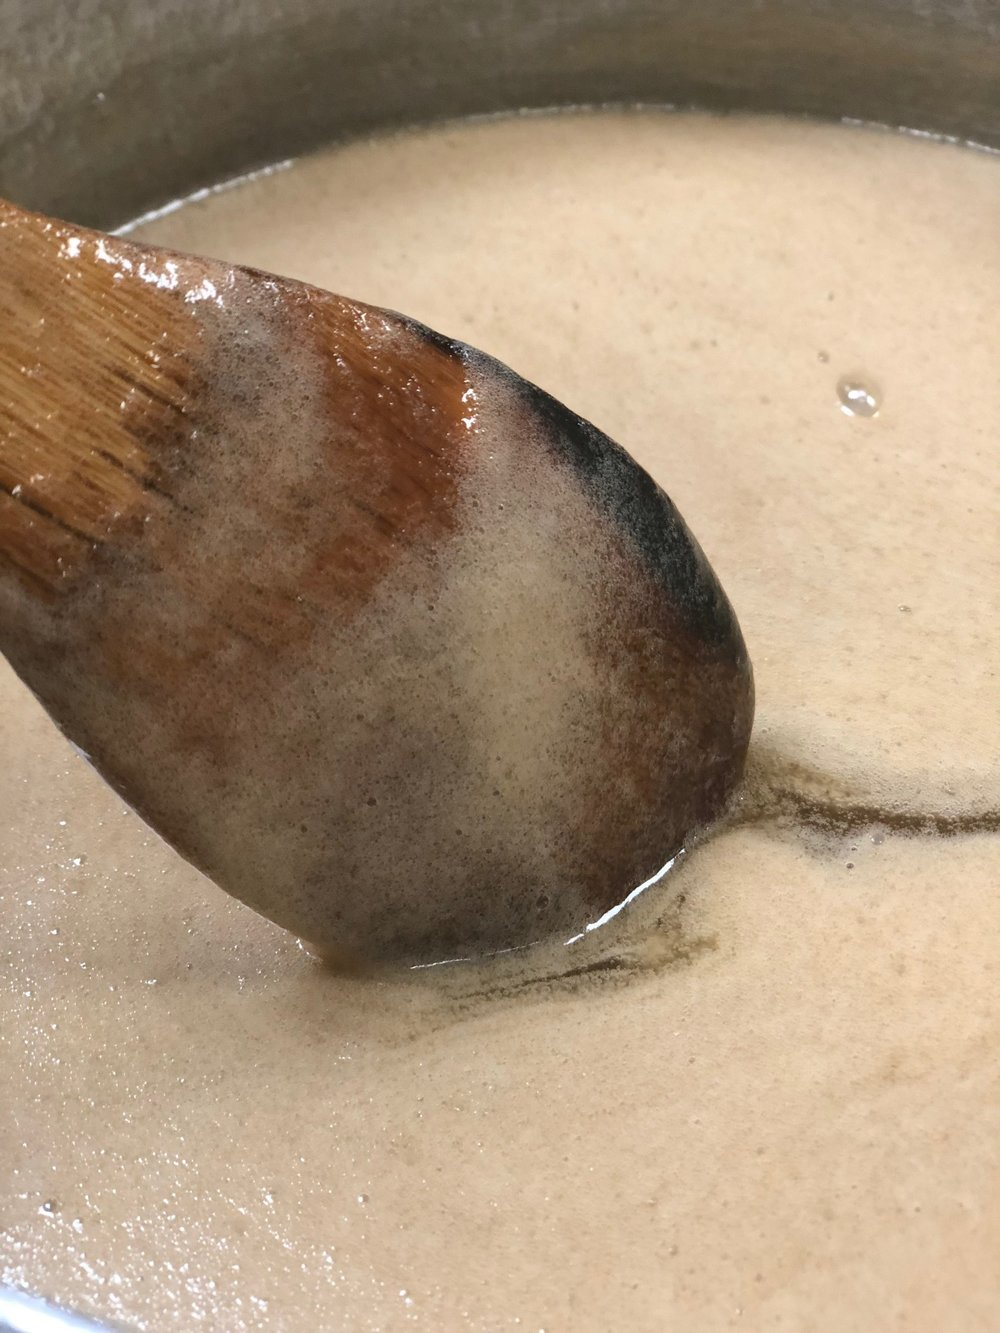 - Bring to a boil until mixture coats the back of a spoon.Remove from heat and add vanilla.